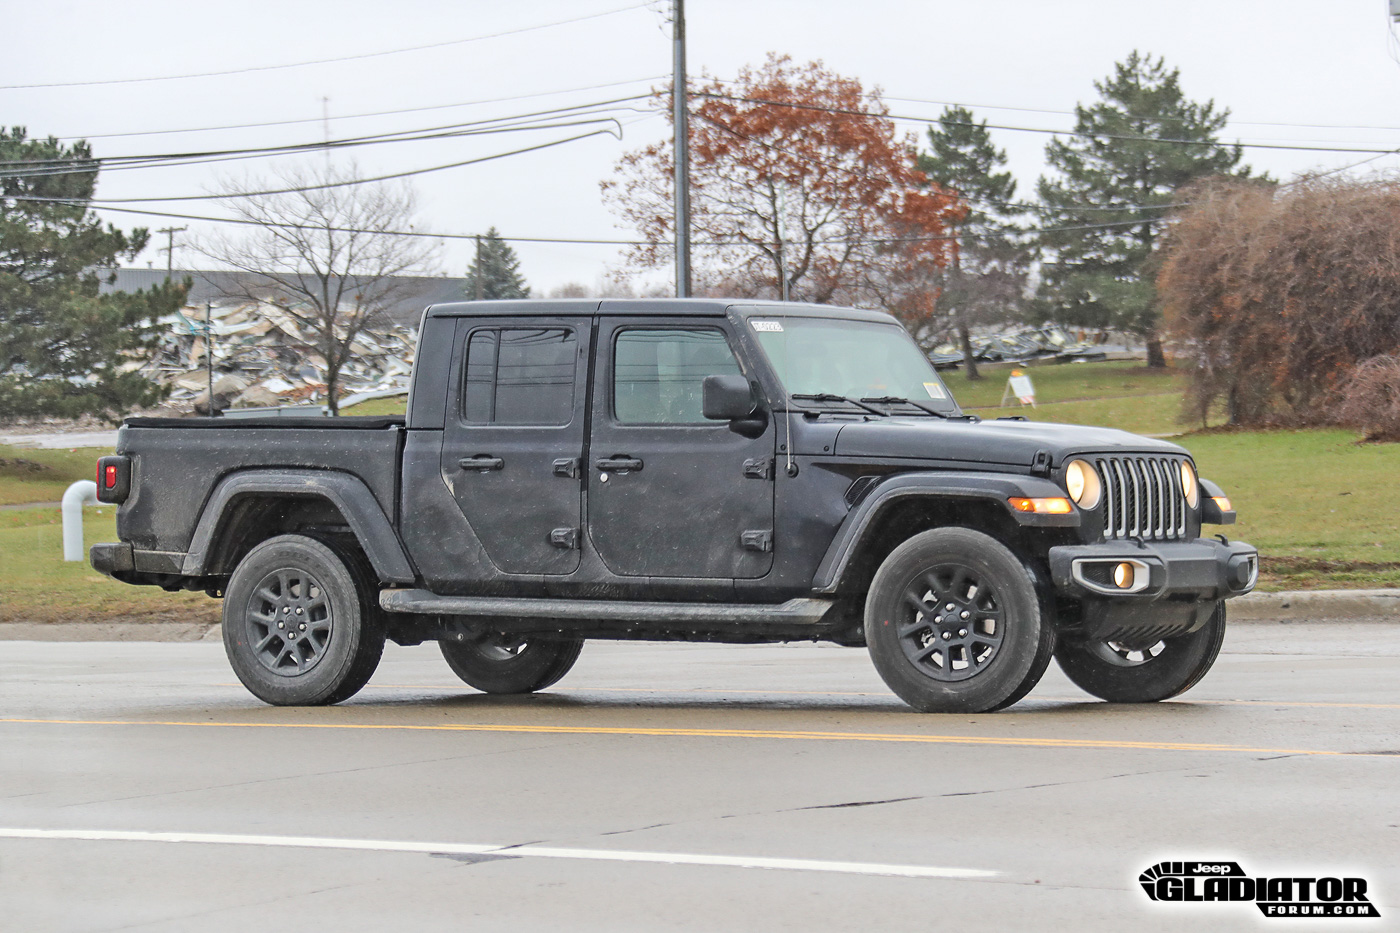 2020-Jeep-Gladiator-JT-Pickup-Truck-Spotted-Undisguised-2.jpg